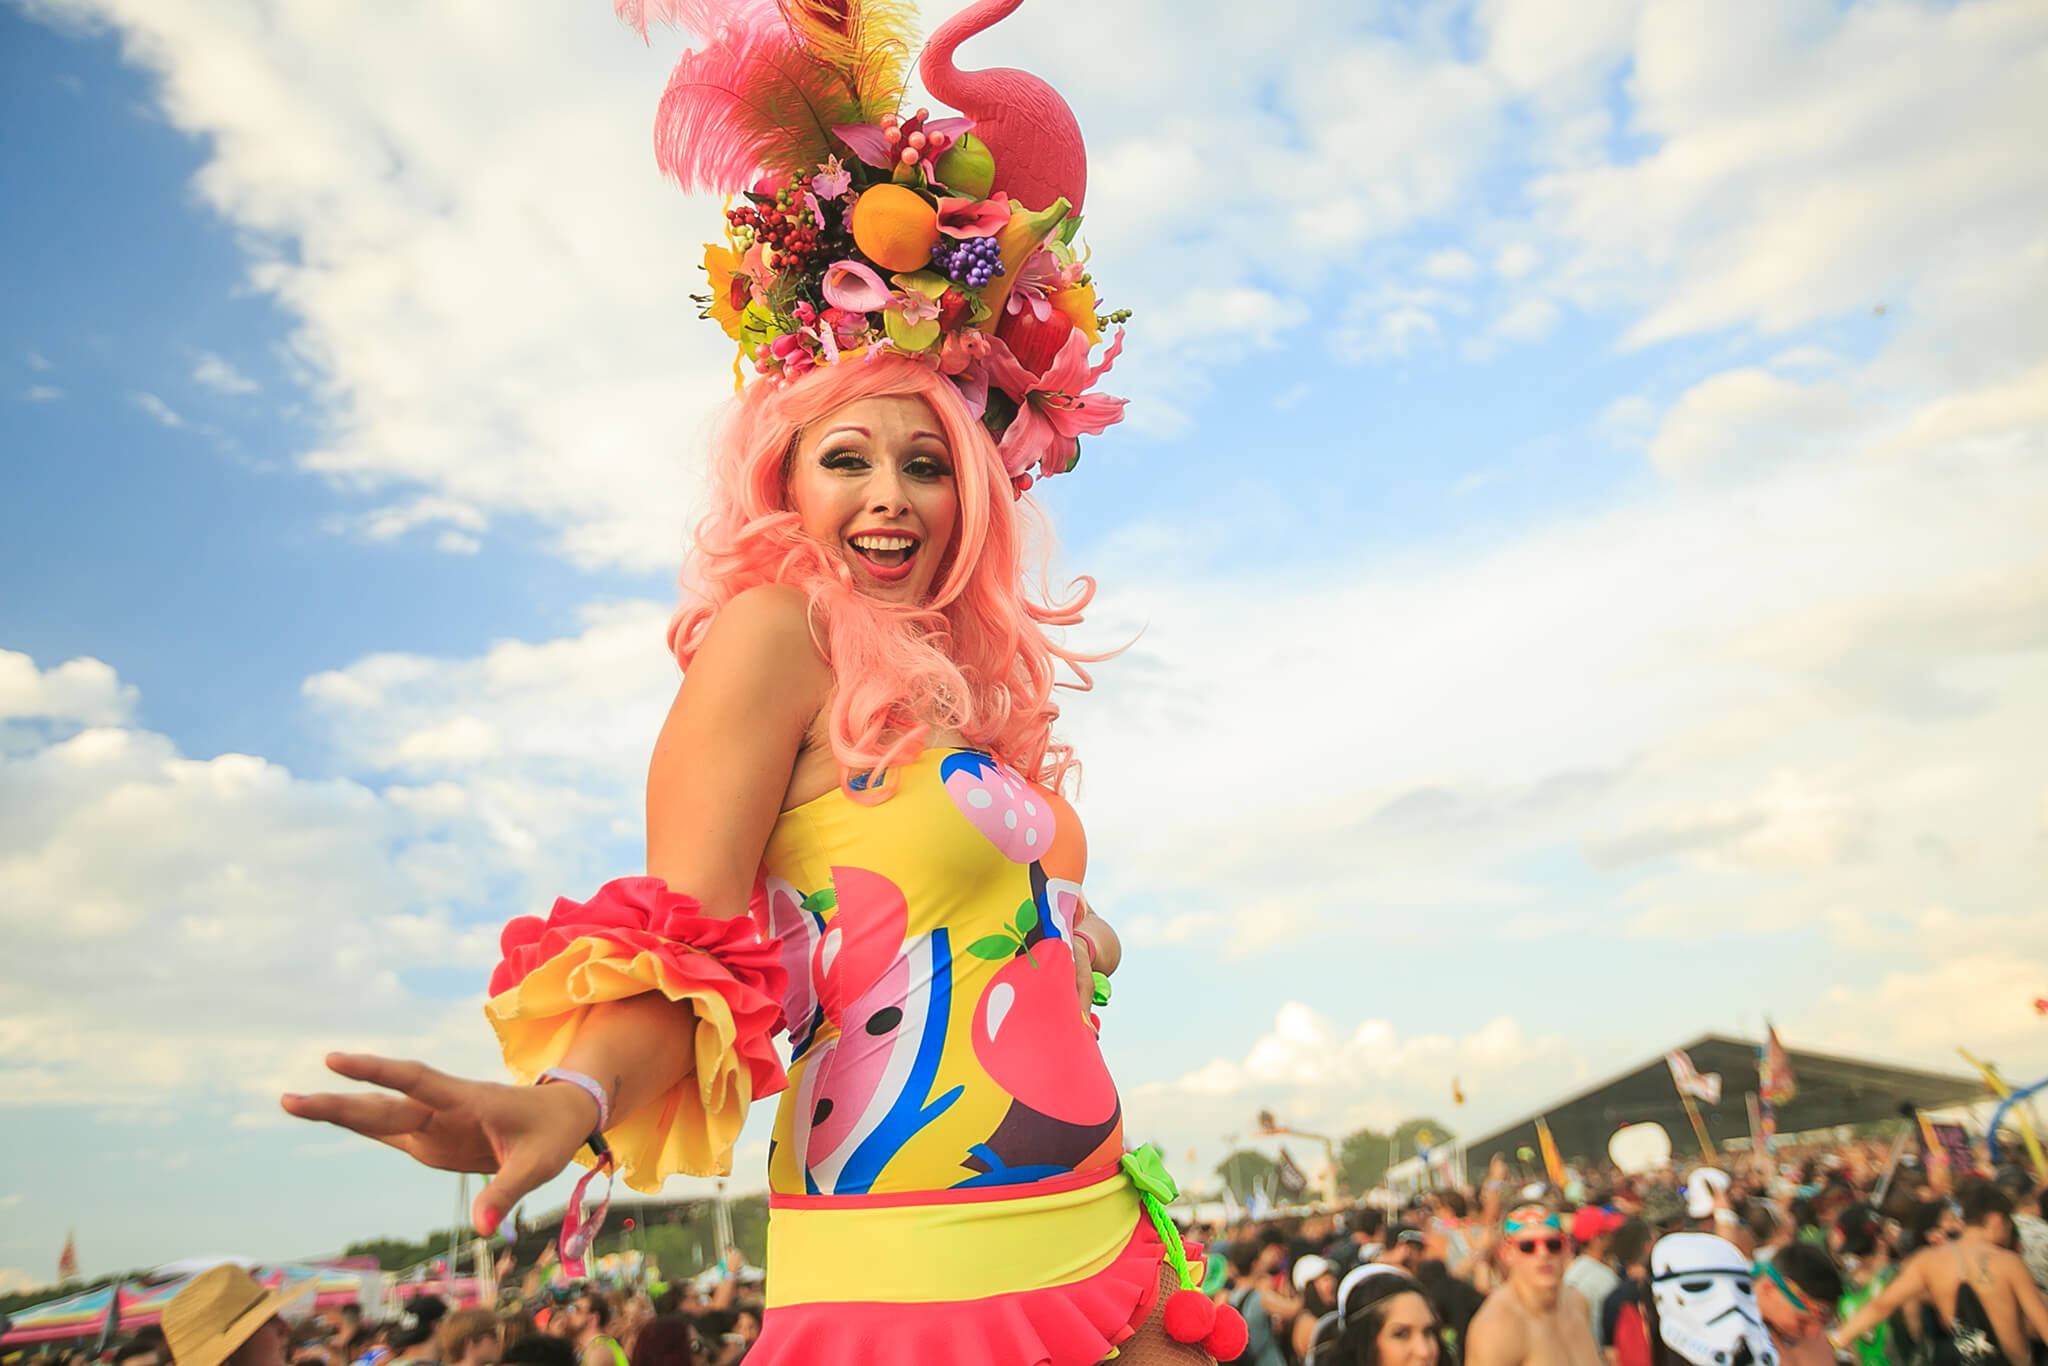 vibrant stage performer at sunset music festival